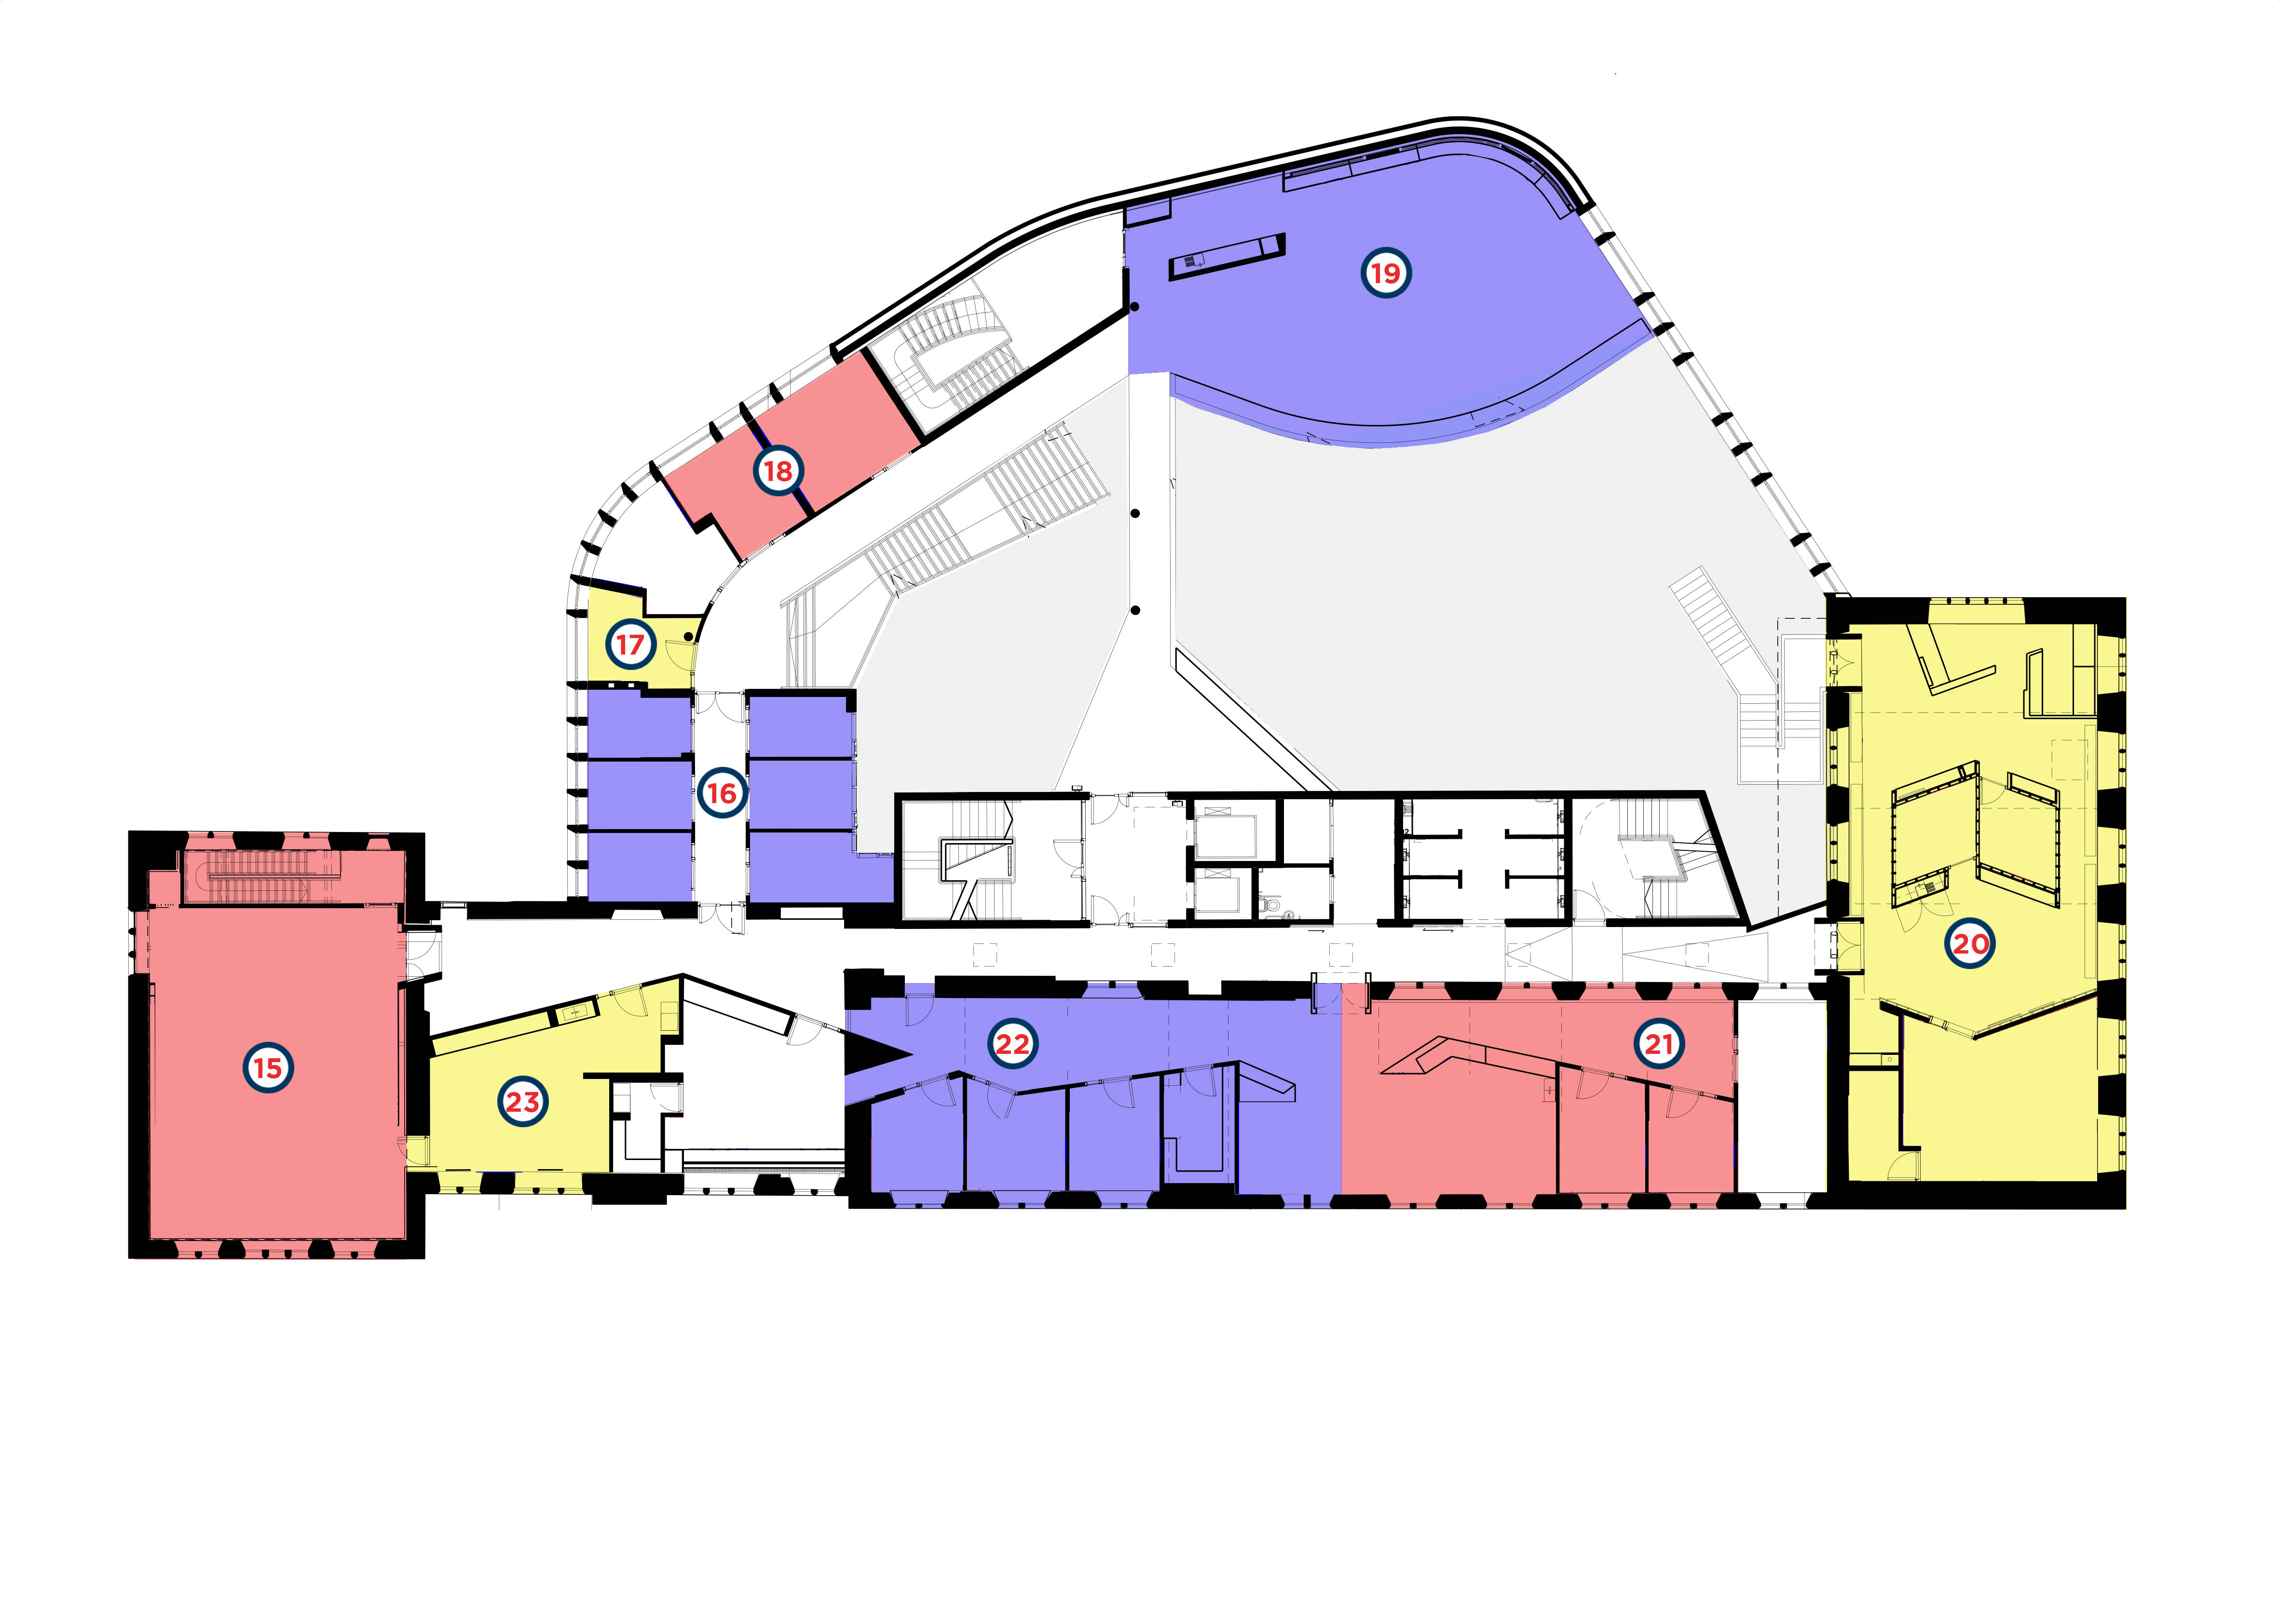 Layout floor plan of the First Floor of the Hub